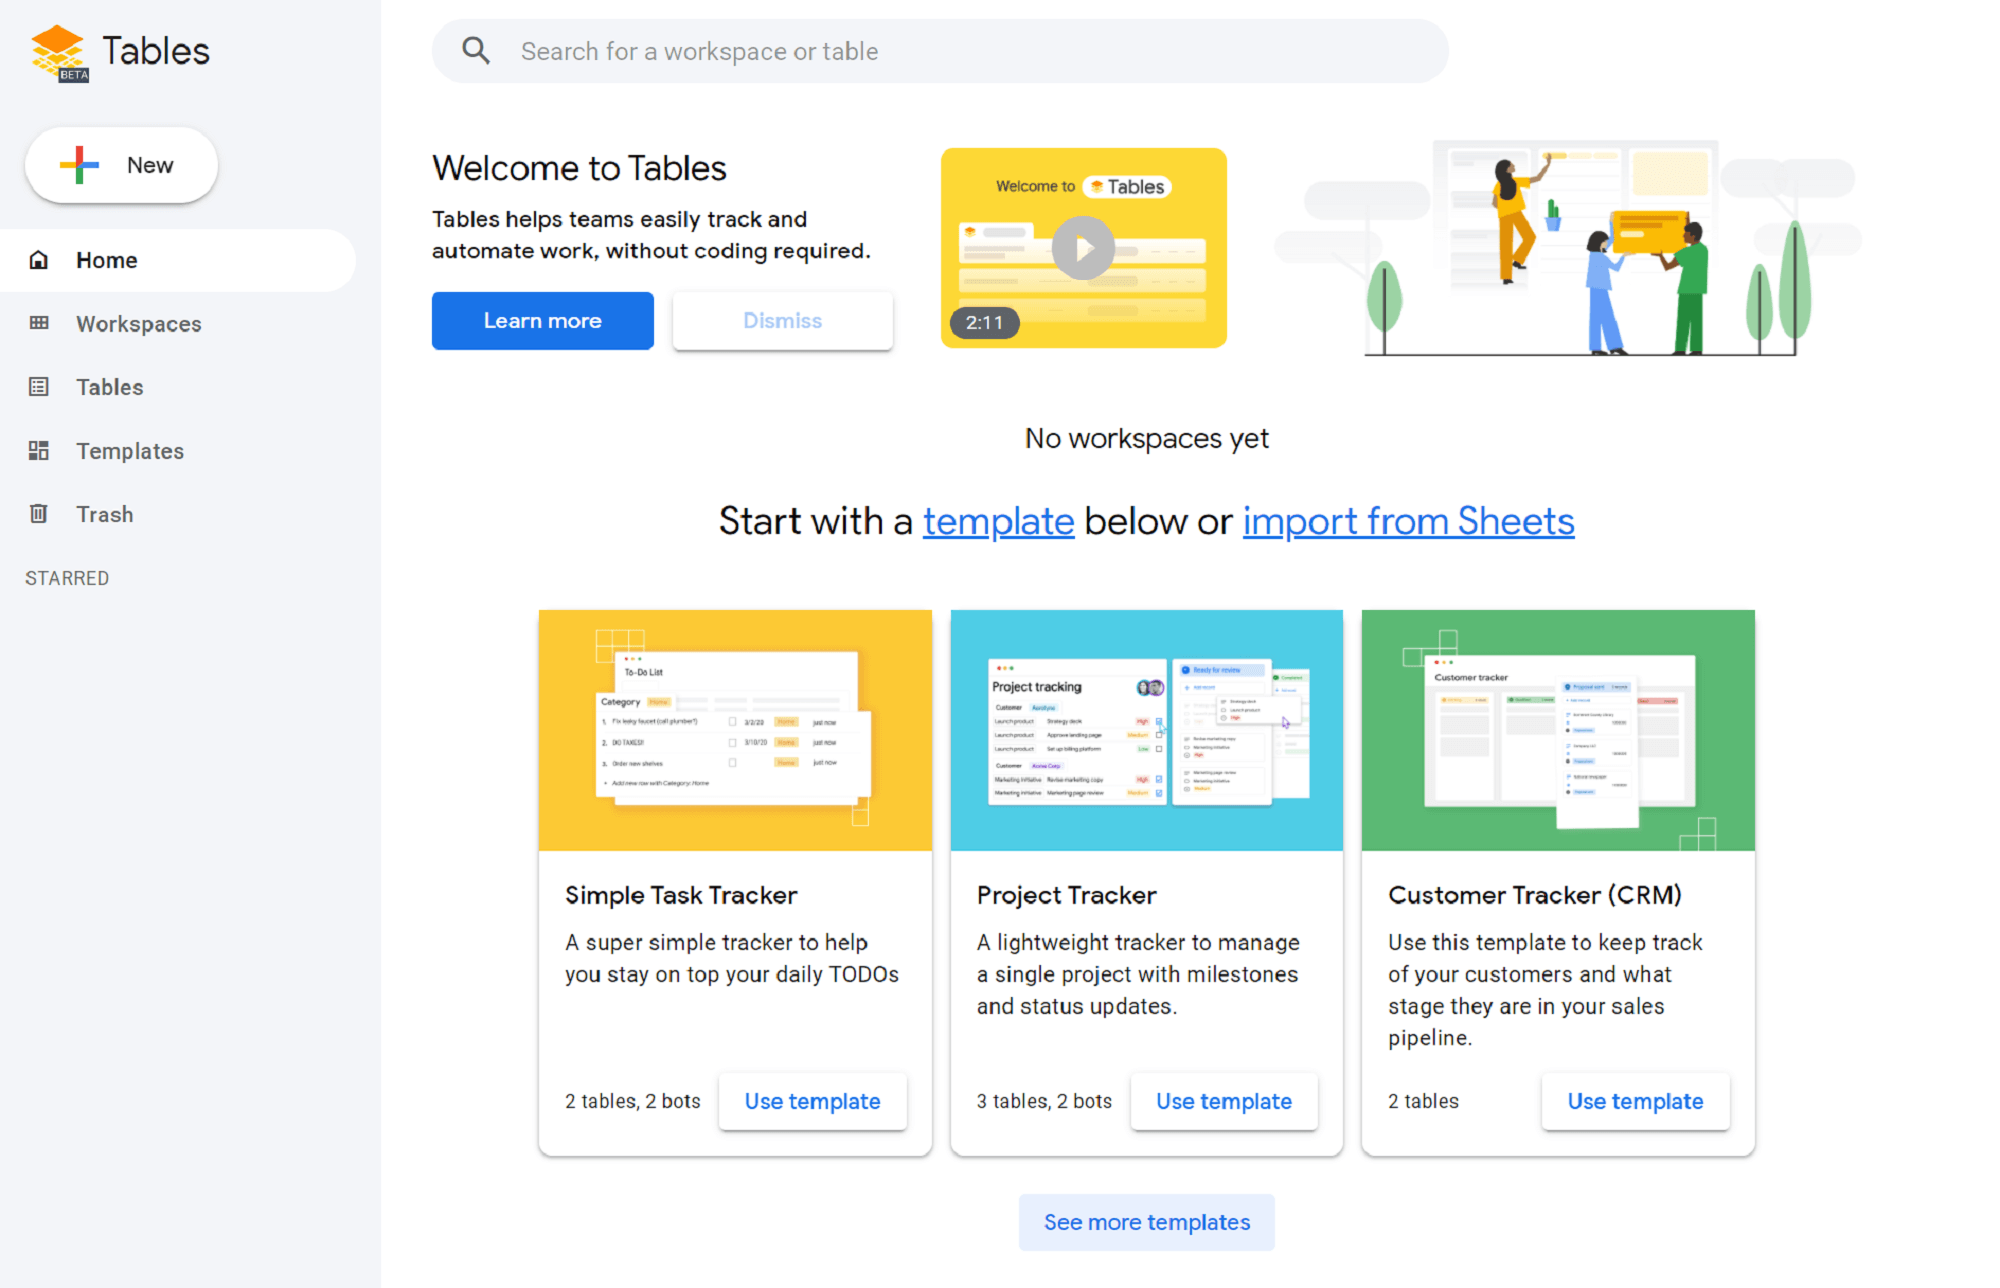 Google Tables: Optimize and Automate Your Workflow